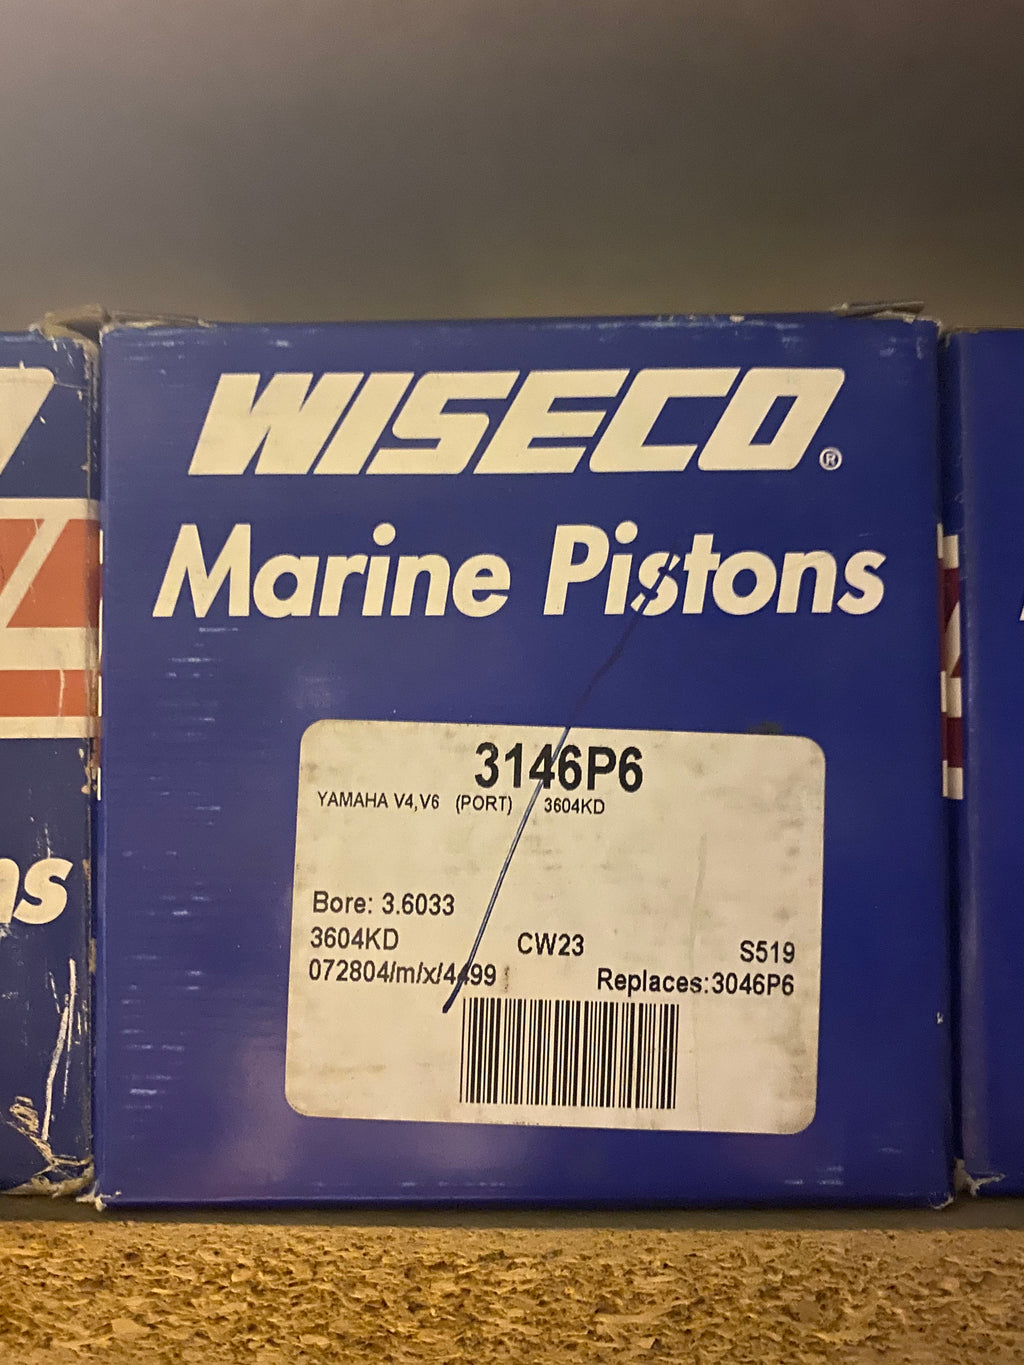 Wiseco Marine Piston Kit 3146P6 Yamaha V4, V6(PORT) 3604KD